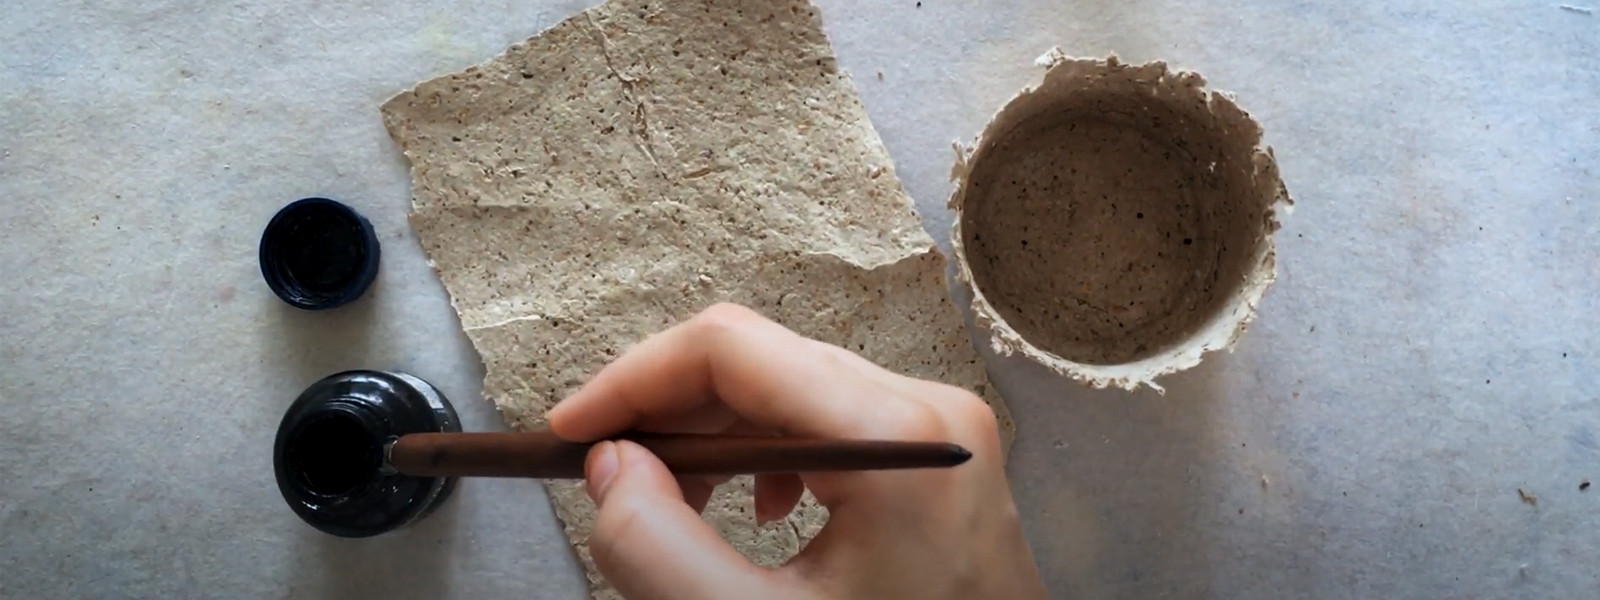 Tutorials - Papermaking from compost materials